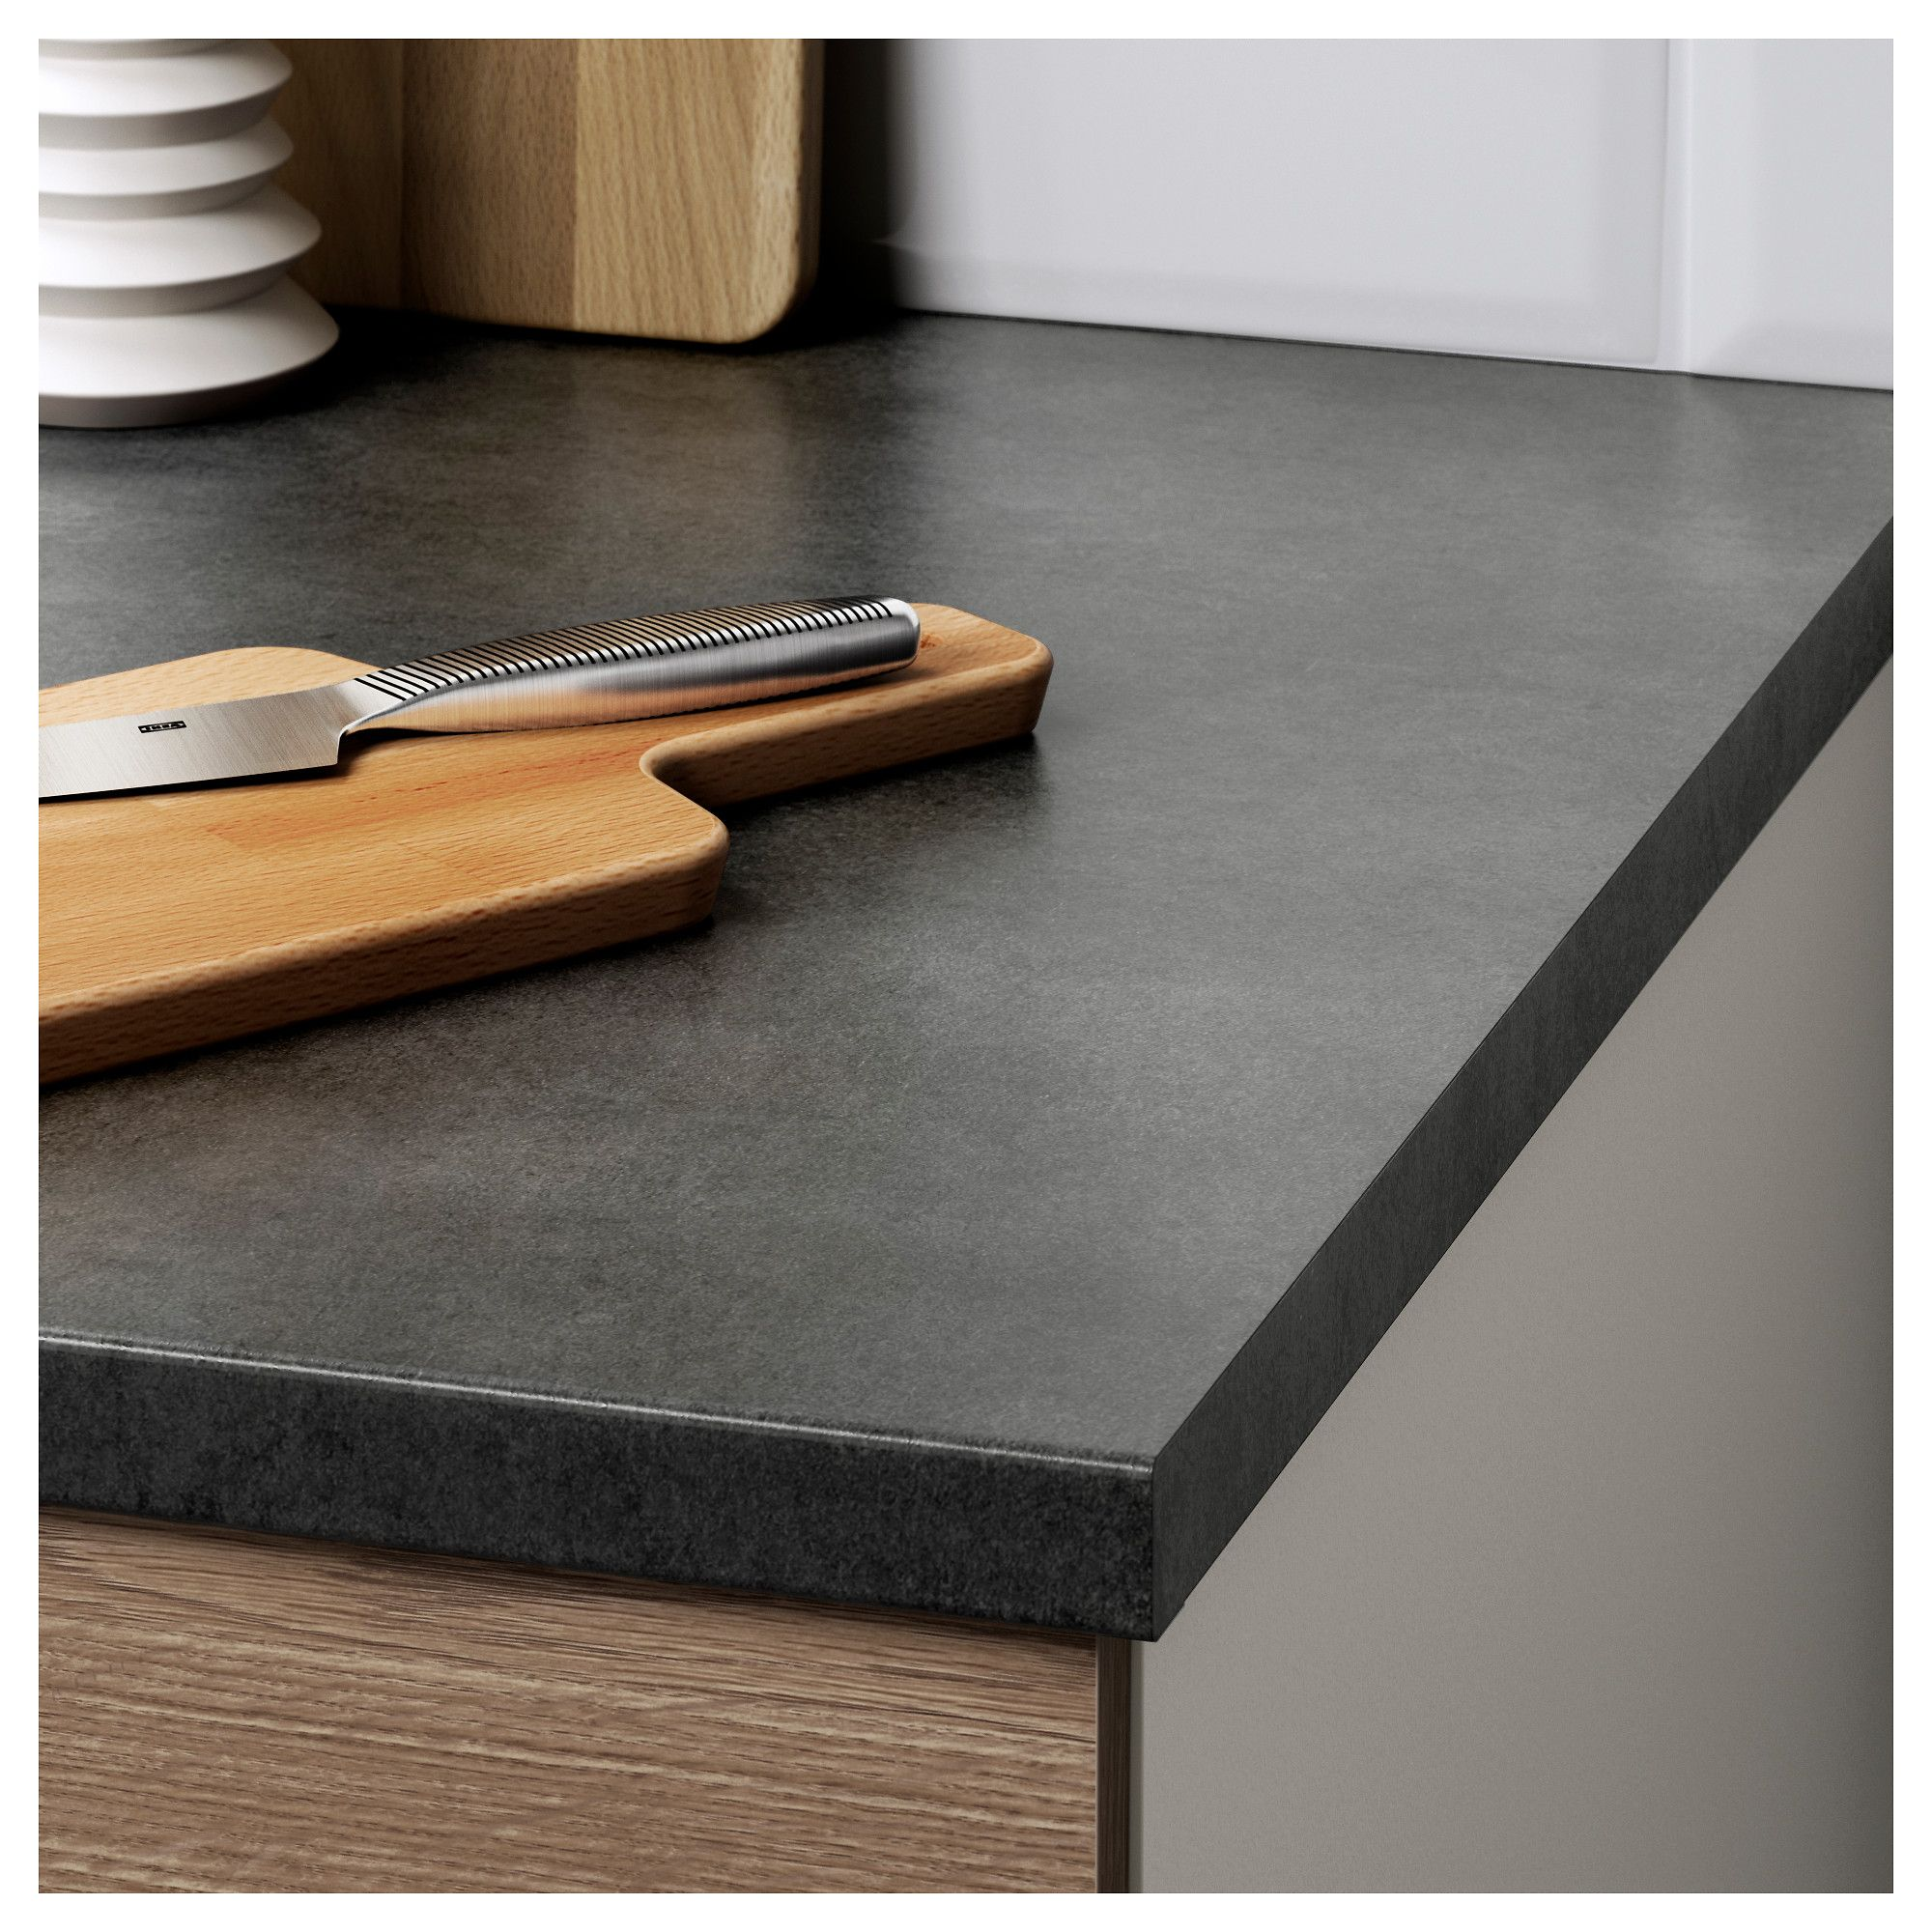 Knoxhult Base Cabinet With Drawers Wood Effect Grey 40 Cm Products